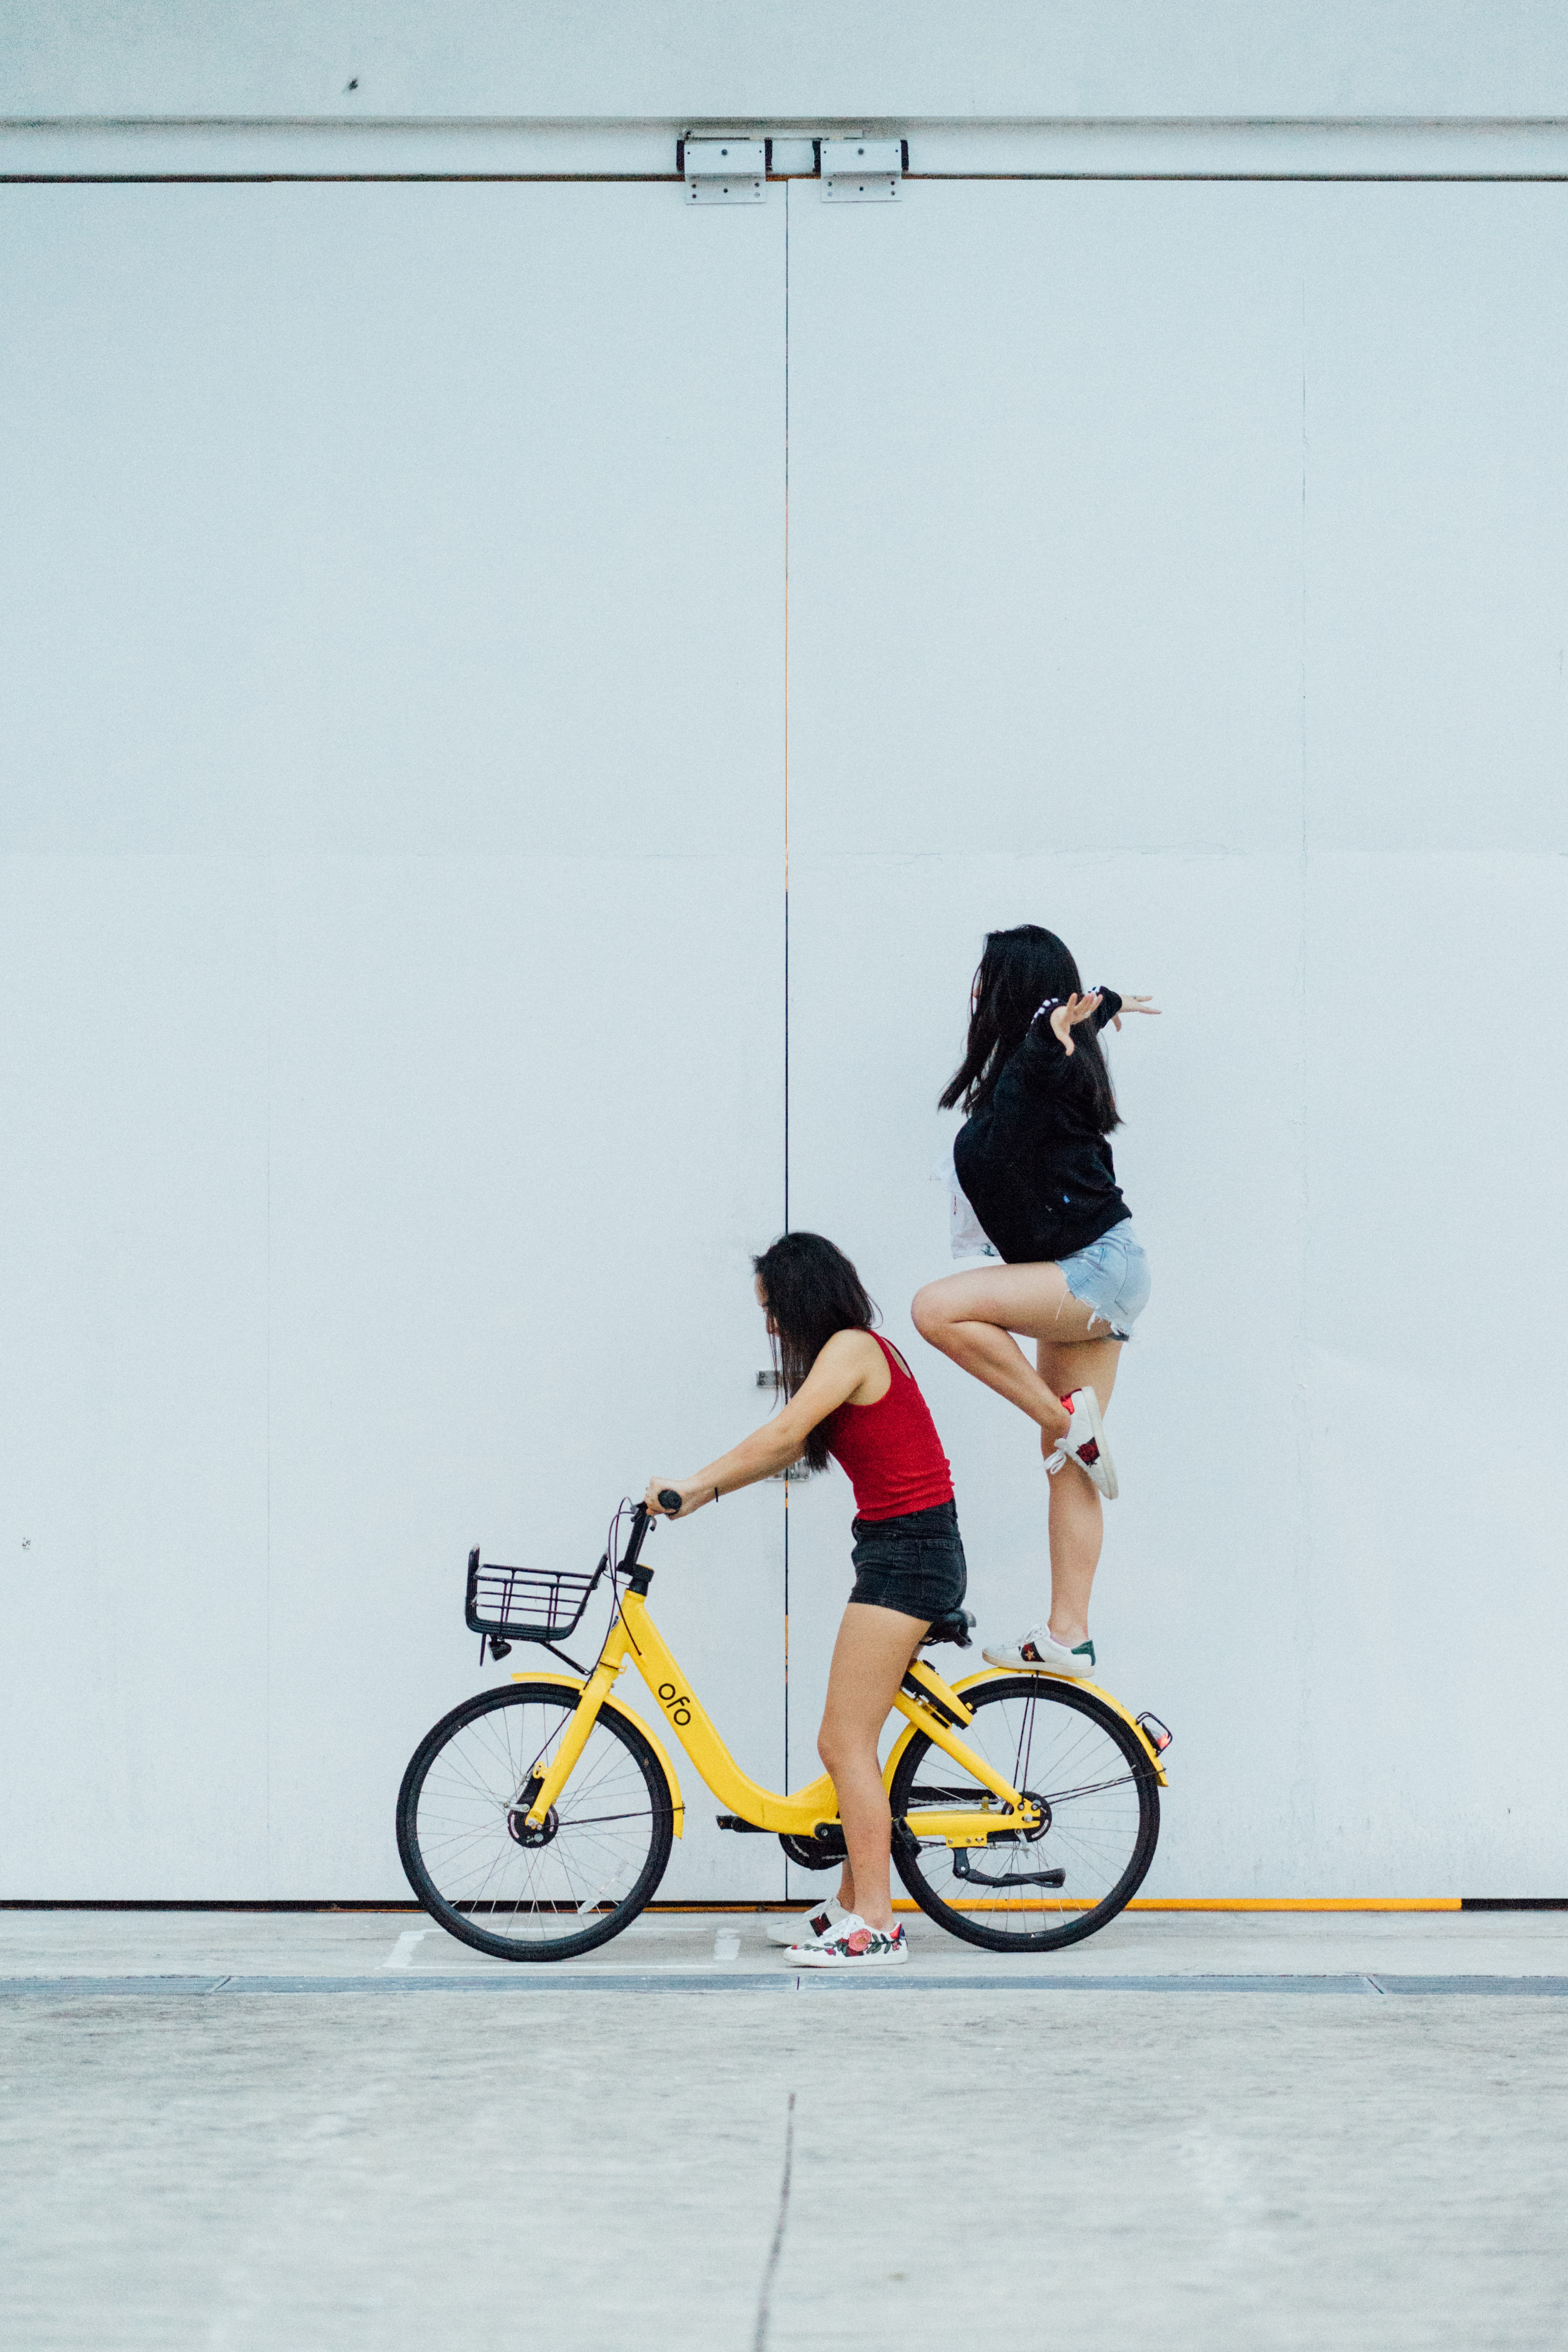 woman riding bicycle with another woman standing on rear fender near wall